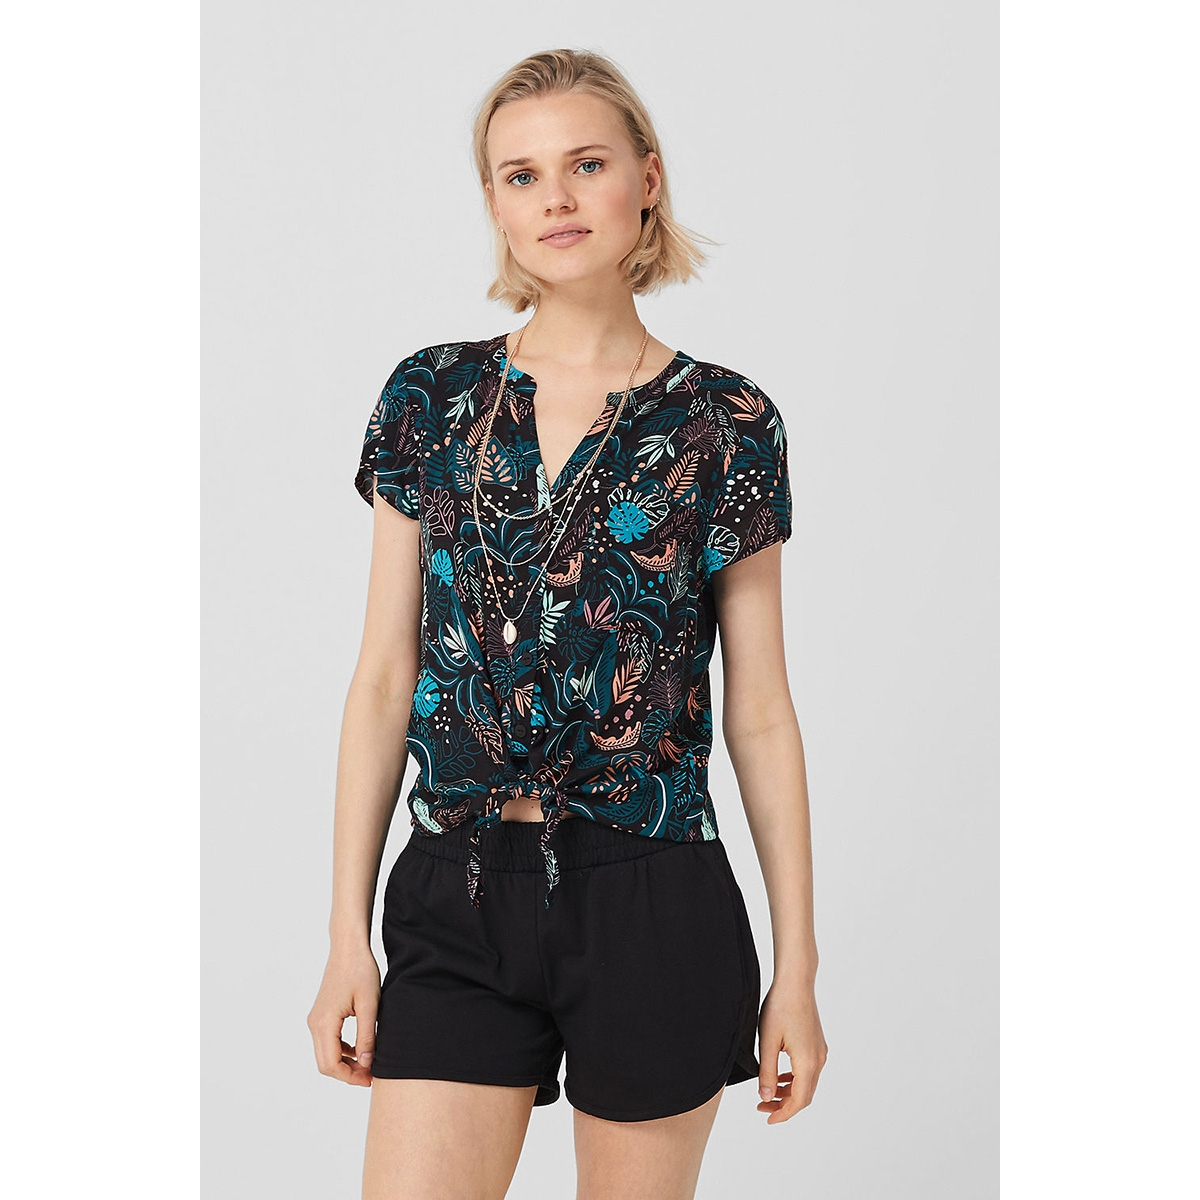 blouse met knoopdetails 46906127686 q/s designed by blouse 99a0